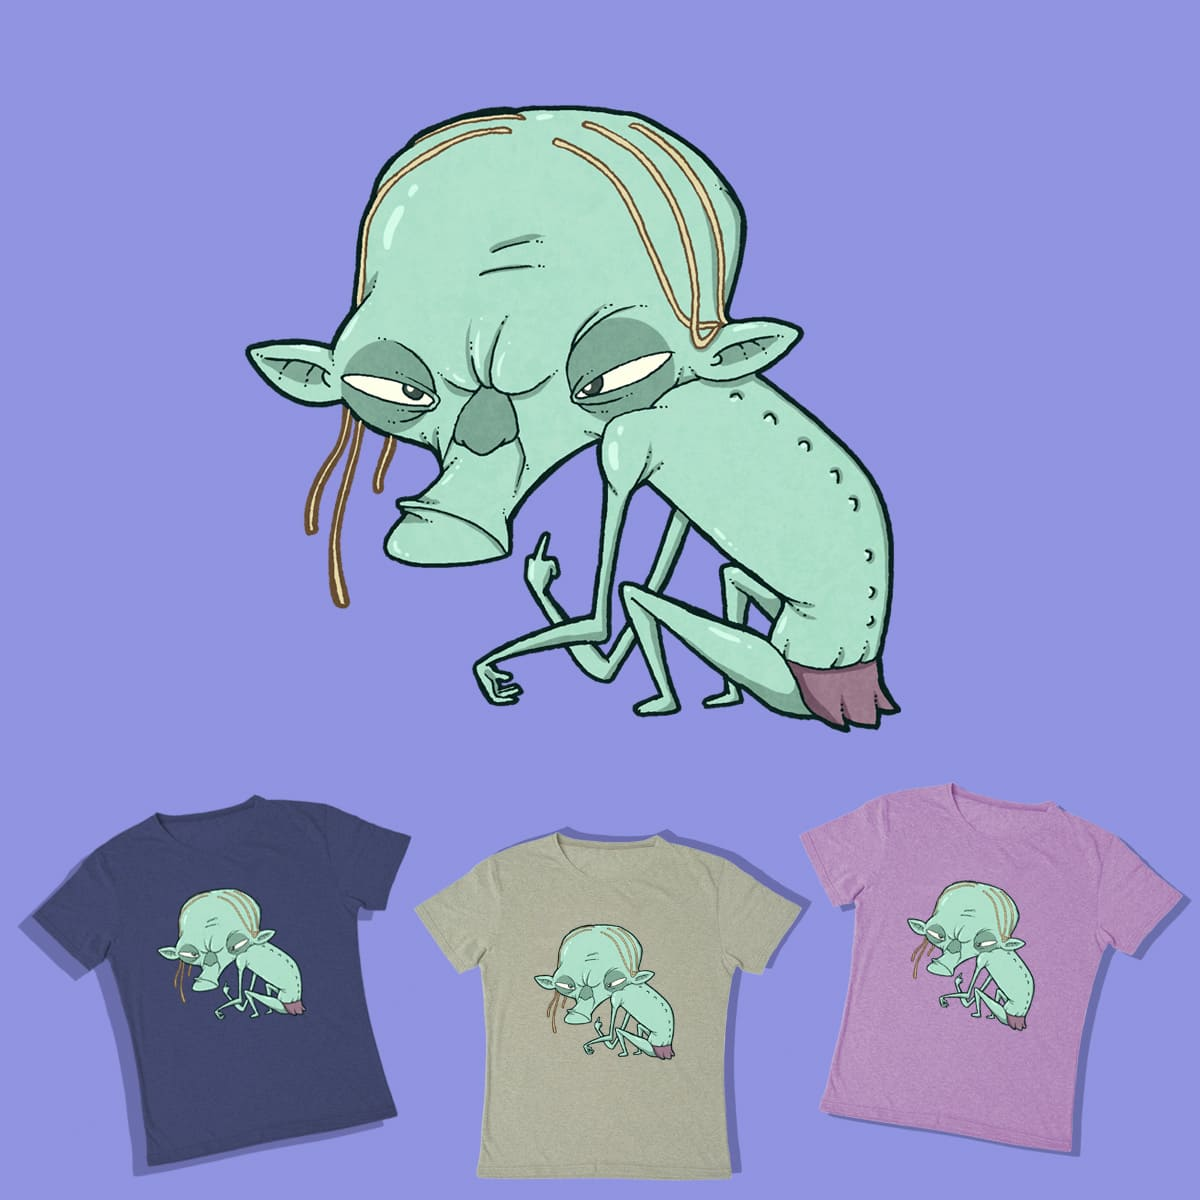 Gollum loves you by lost-angel-less on Threadless